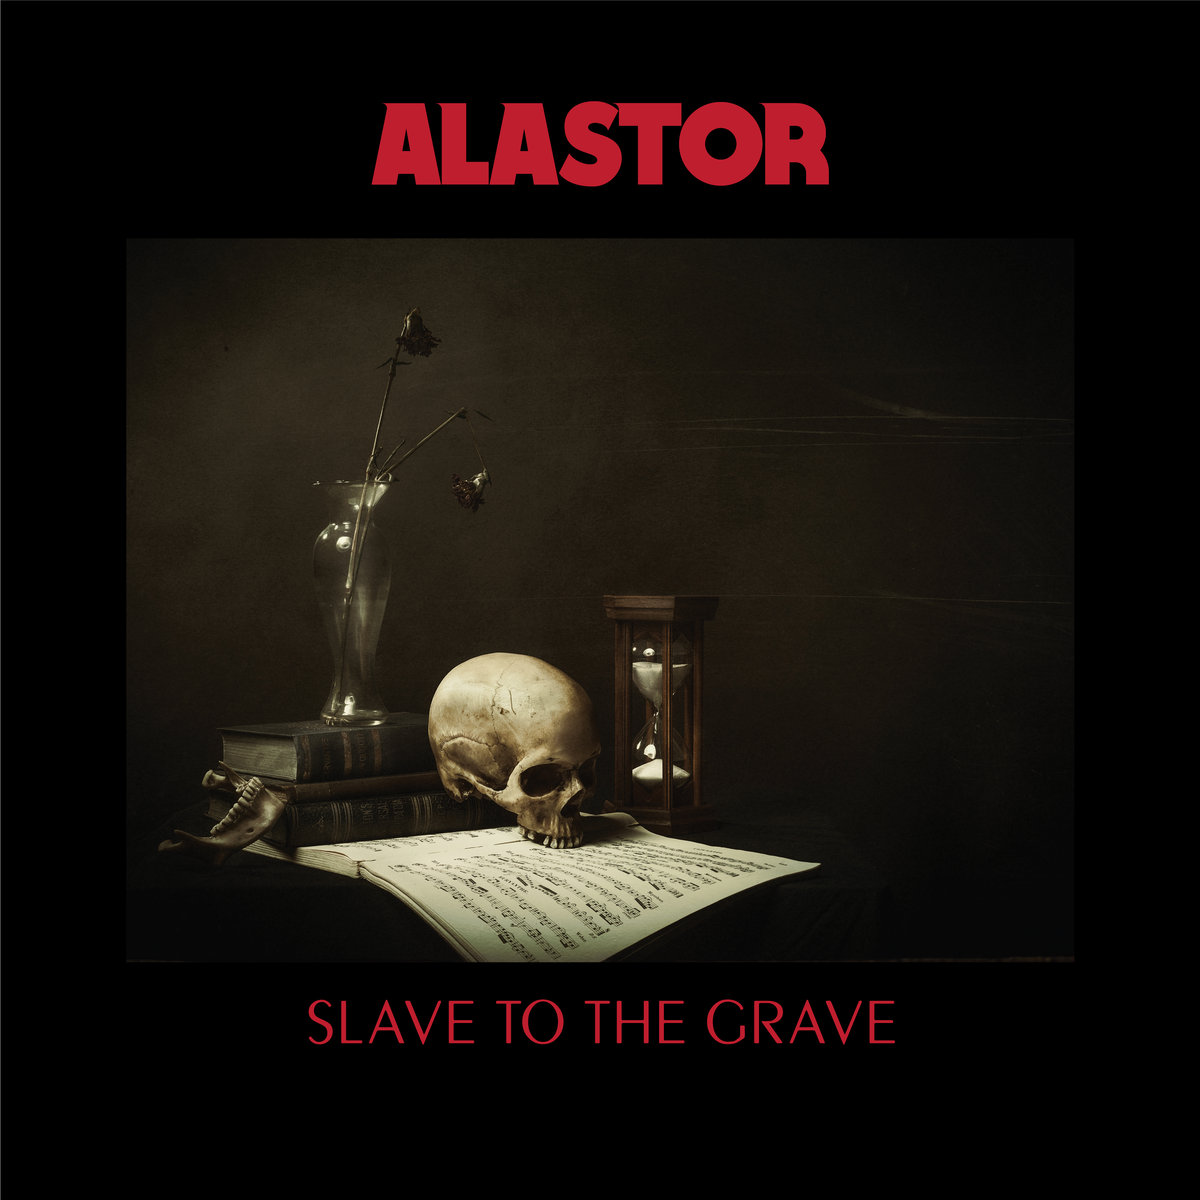 alastor slave to the grave